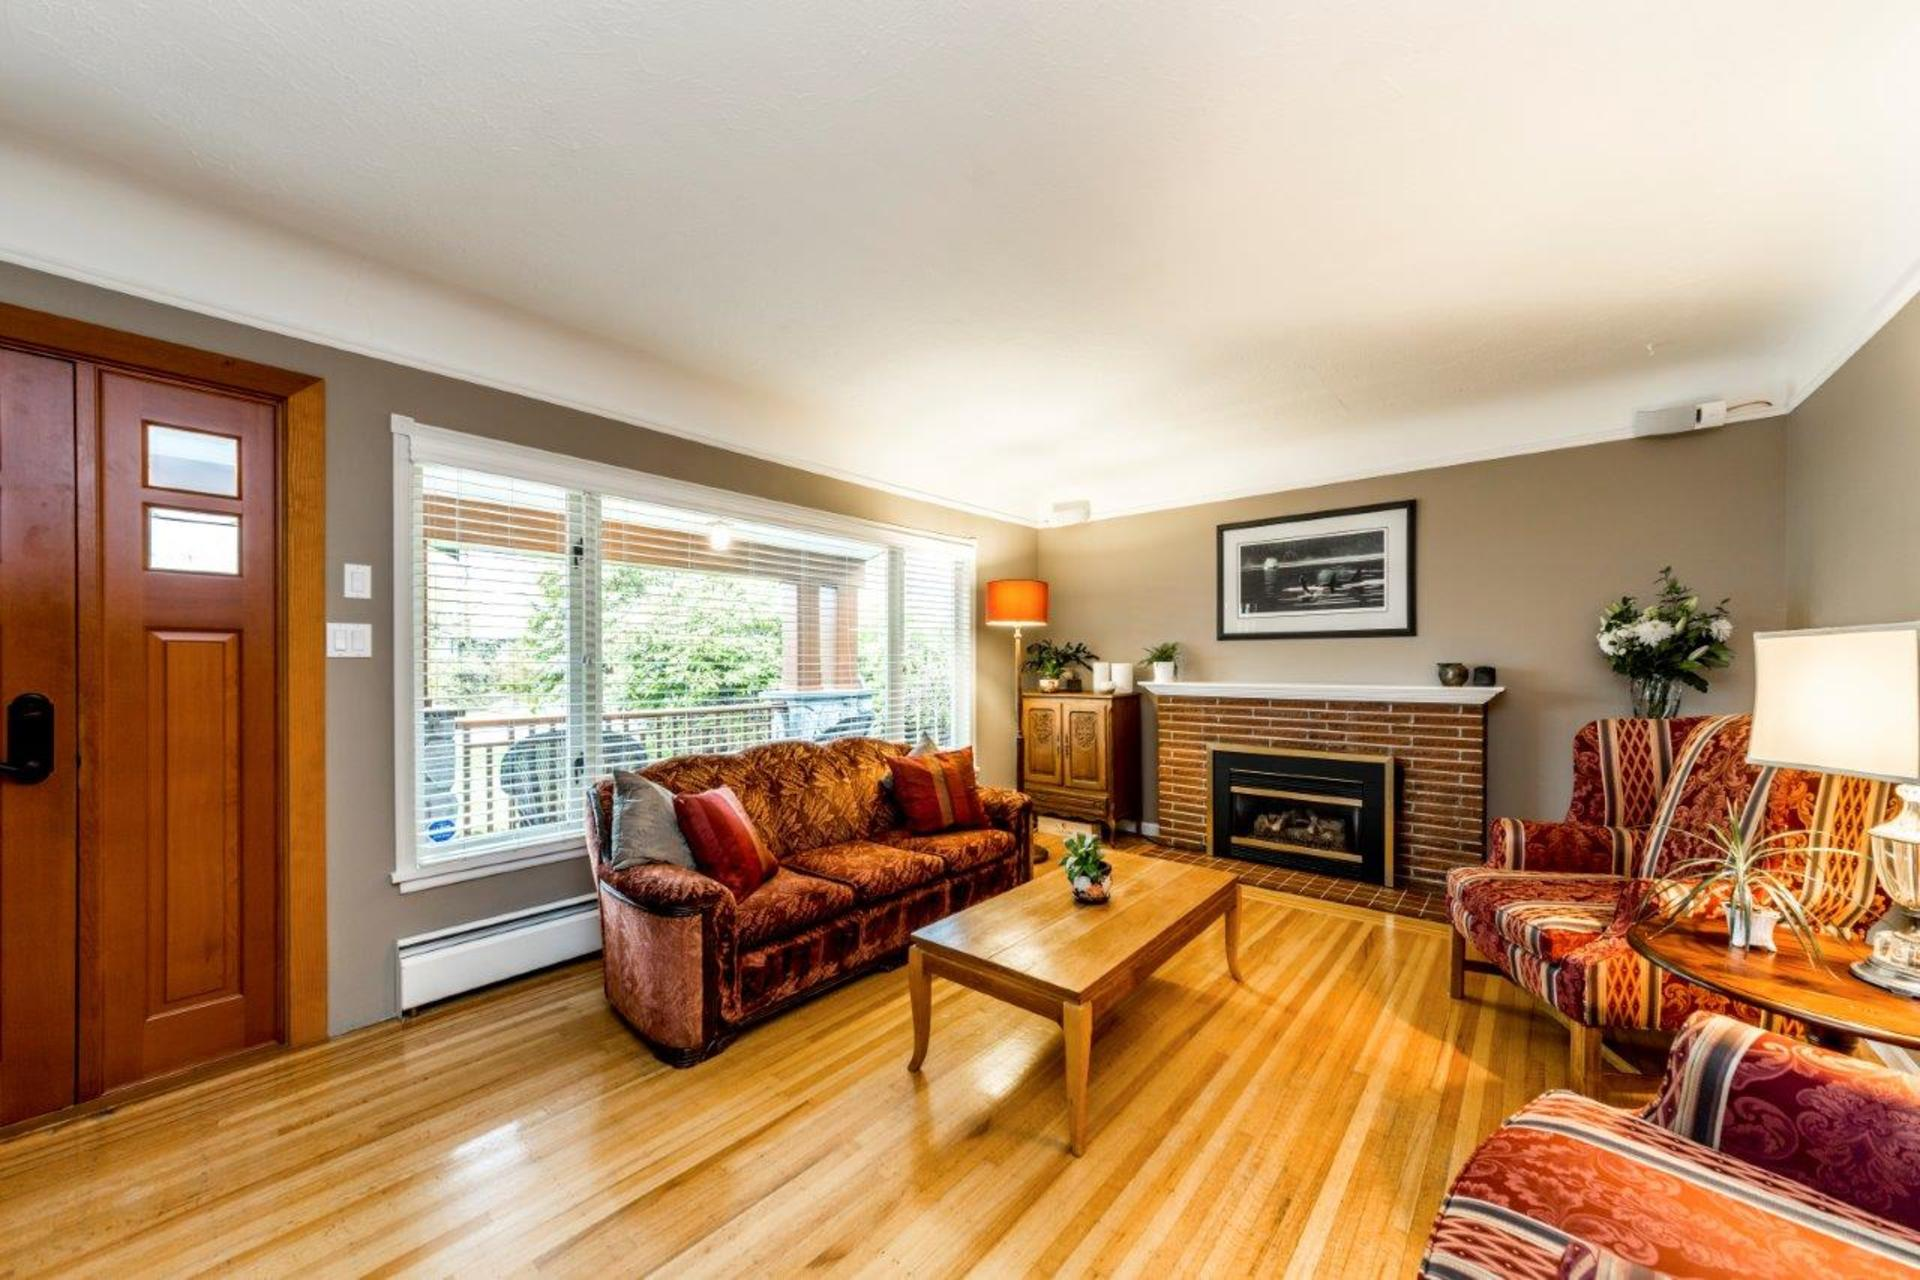 774e9-3 at 774 East 9th Street, Boulevard, North Vancouver